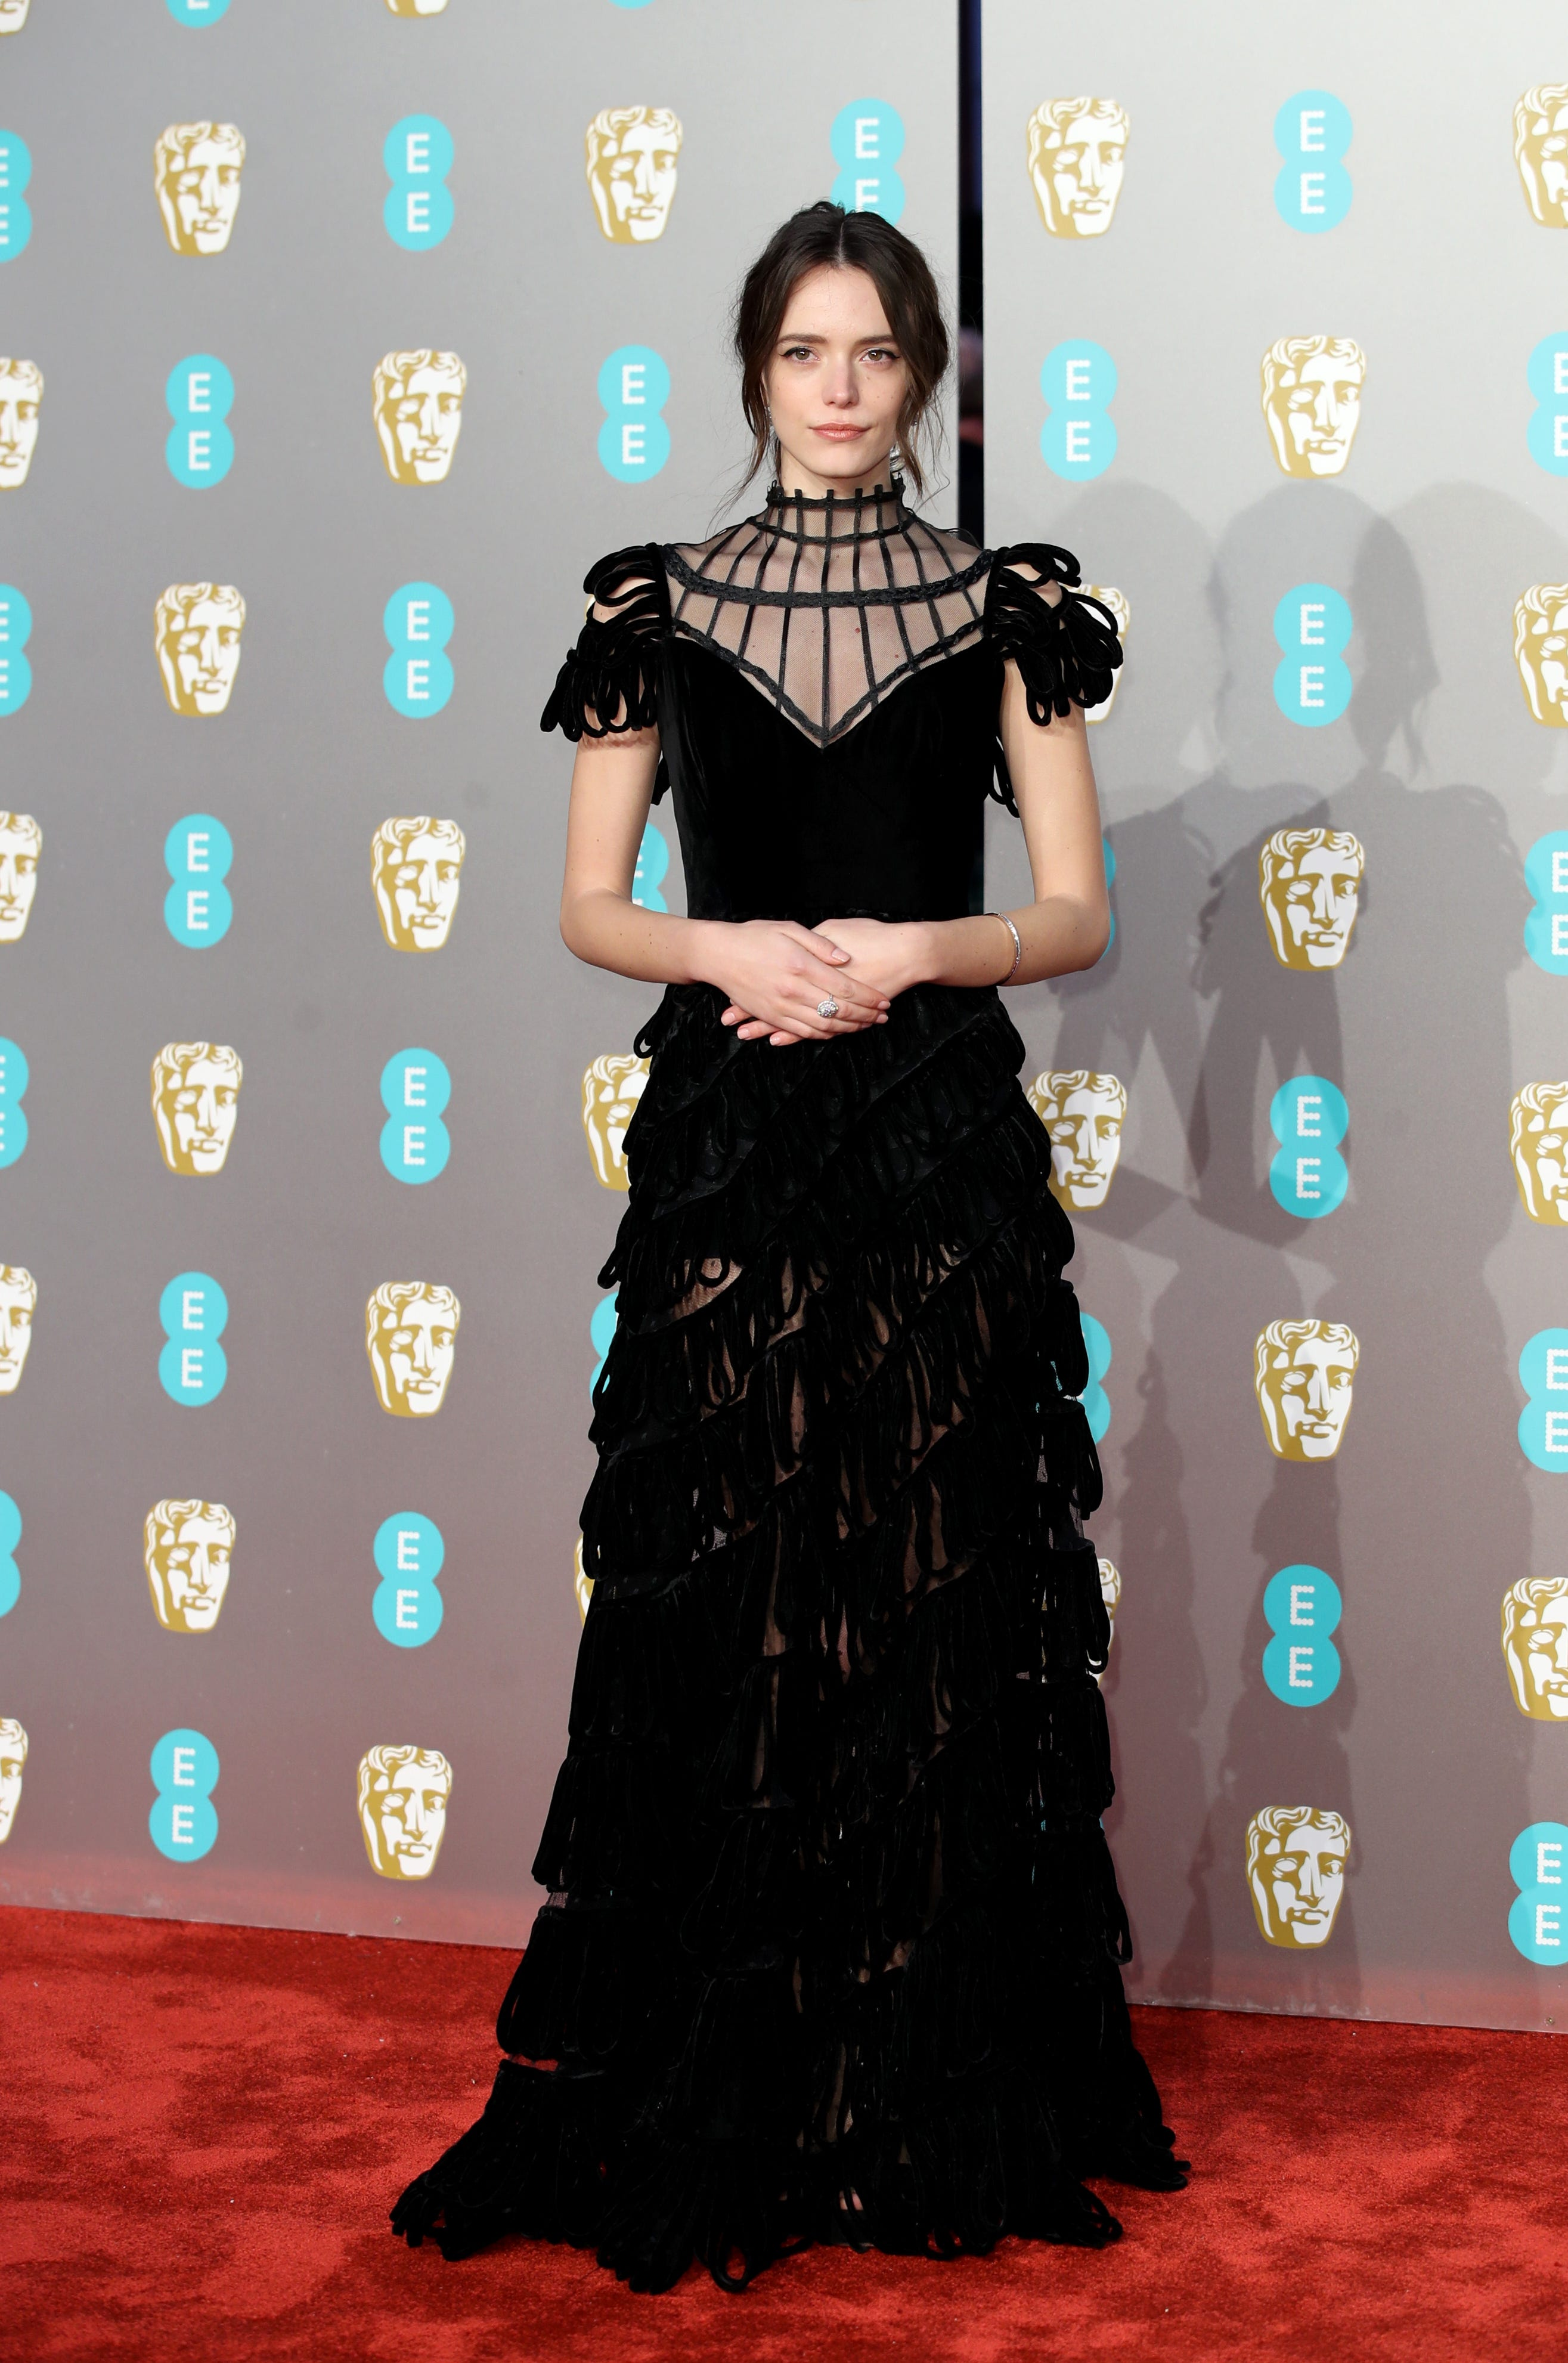 The Standout Looks From This Year s BAFTAs Red Carpet